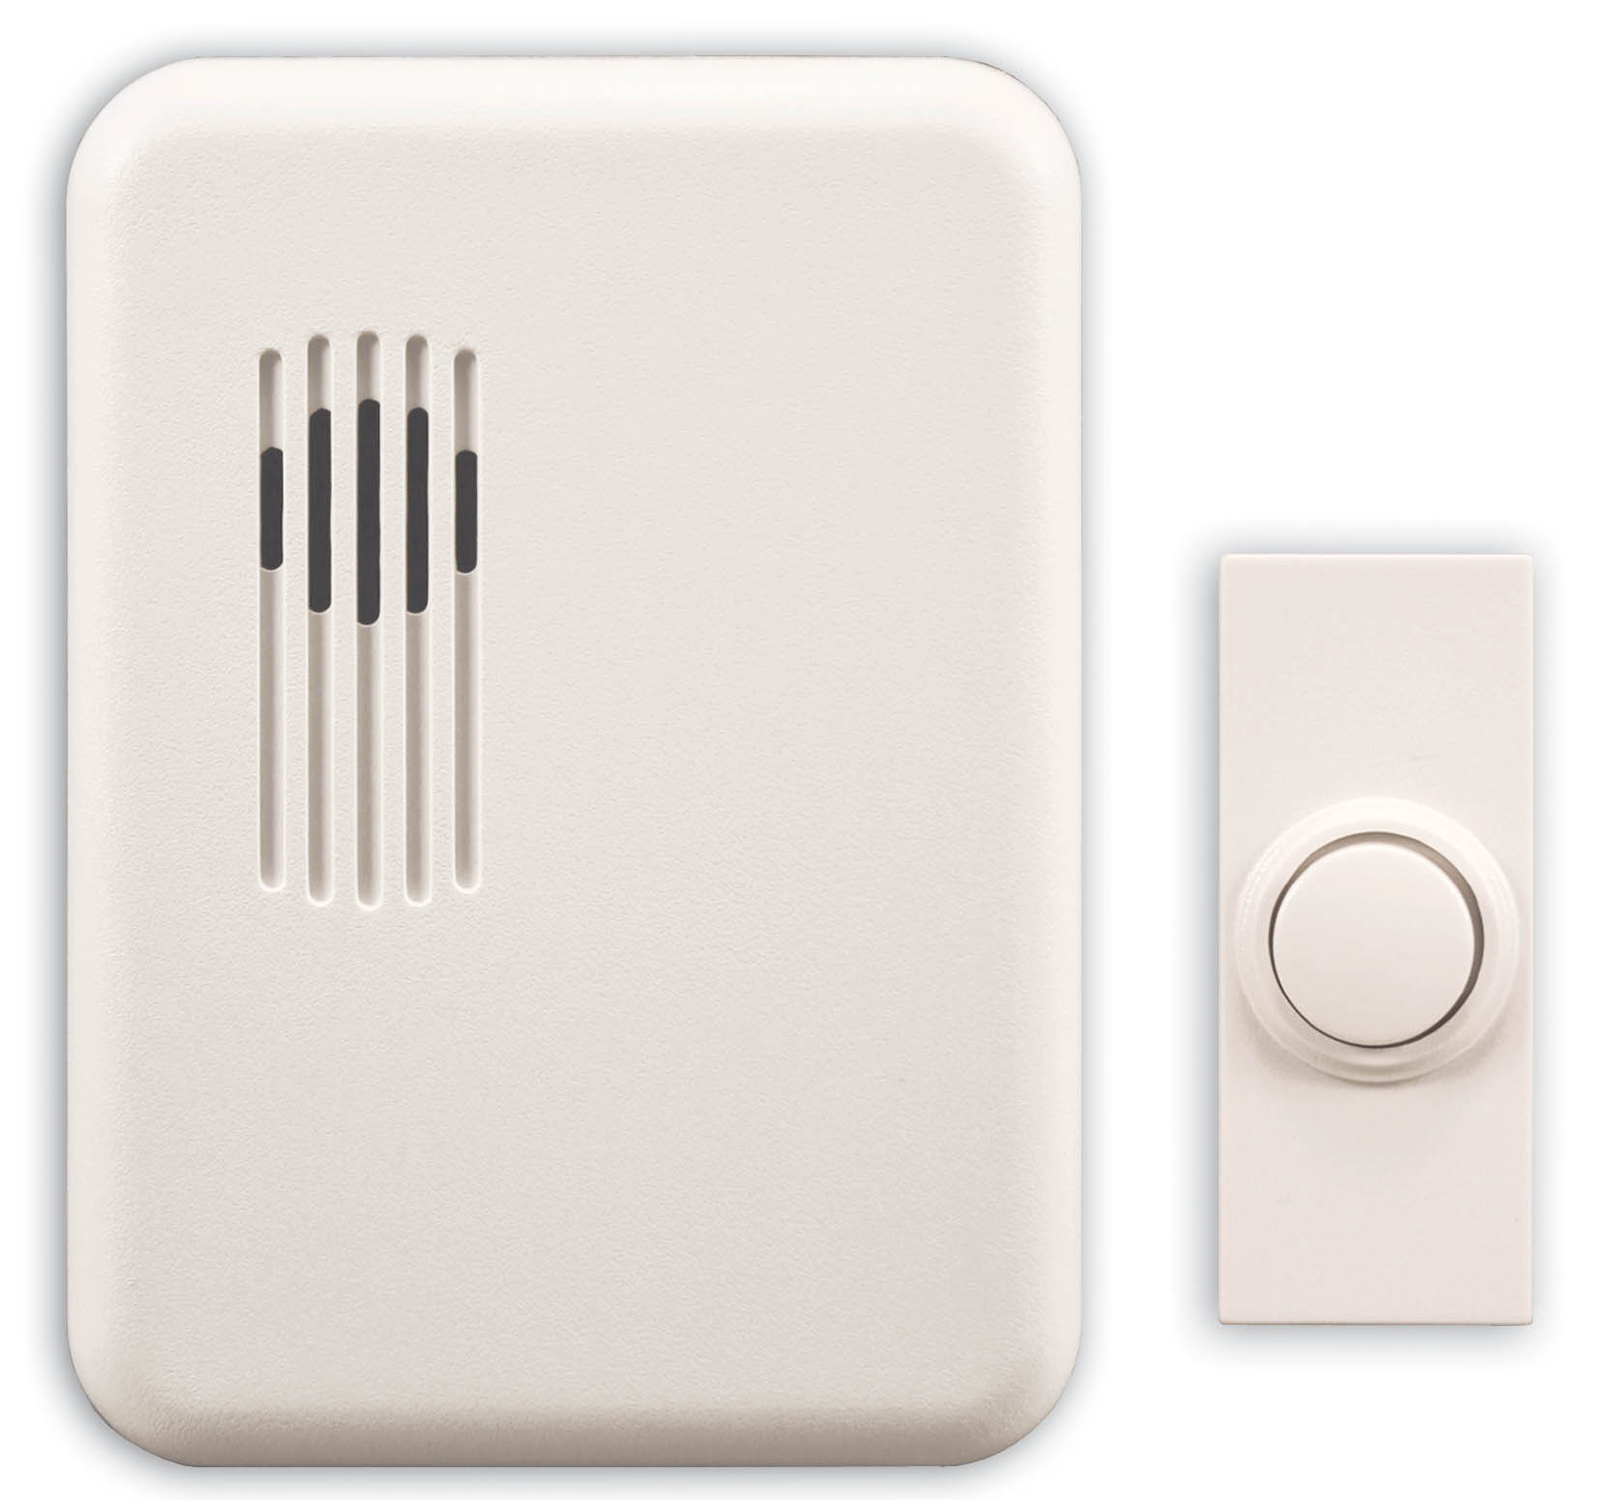 Doorbell Chime with Push Button DL-6153 Heath Zenith Wireless Battery Op